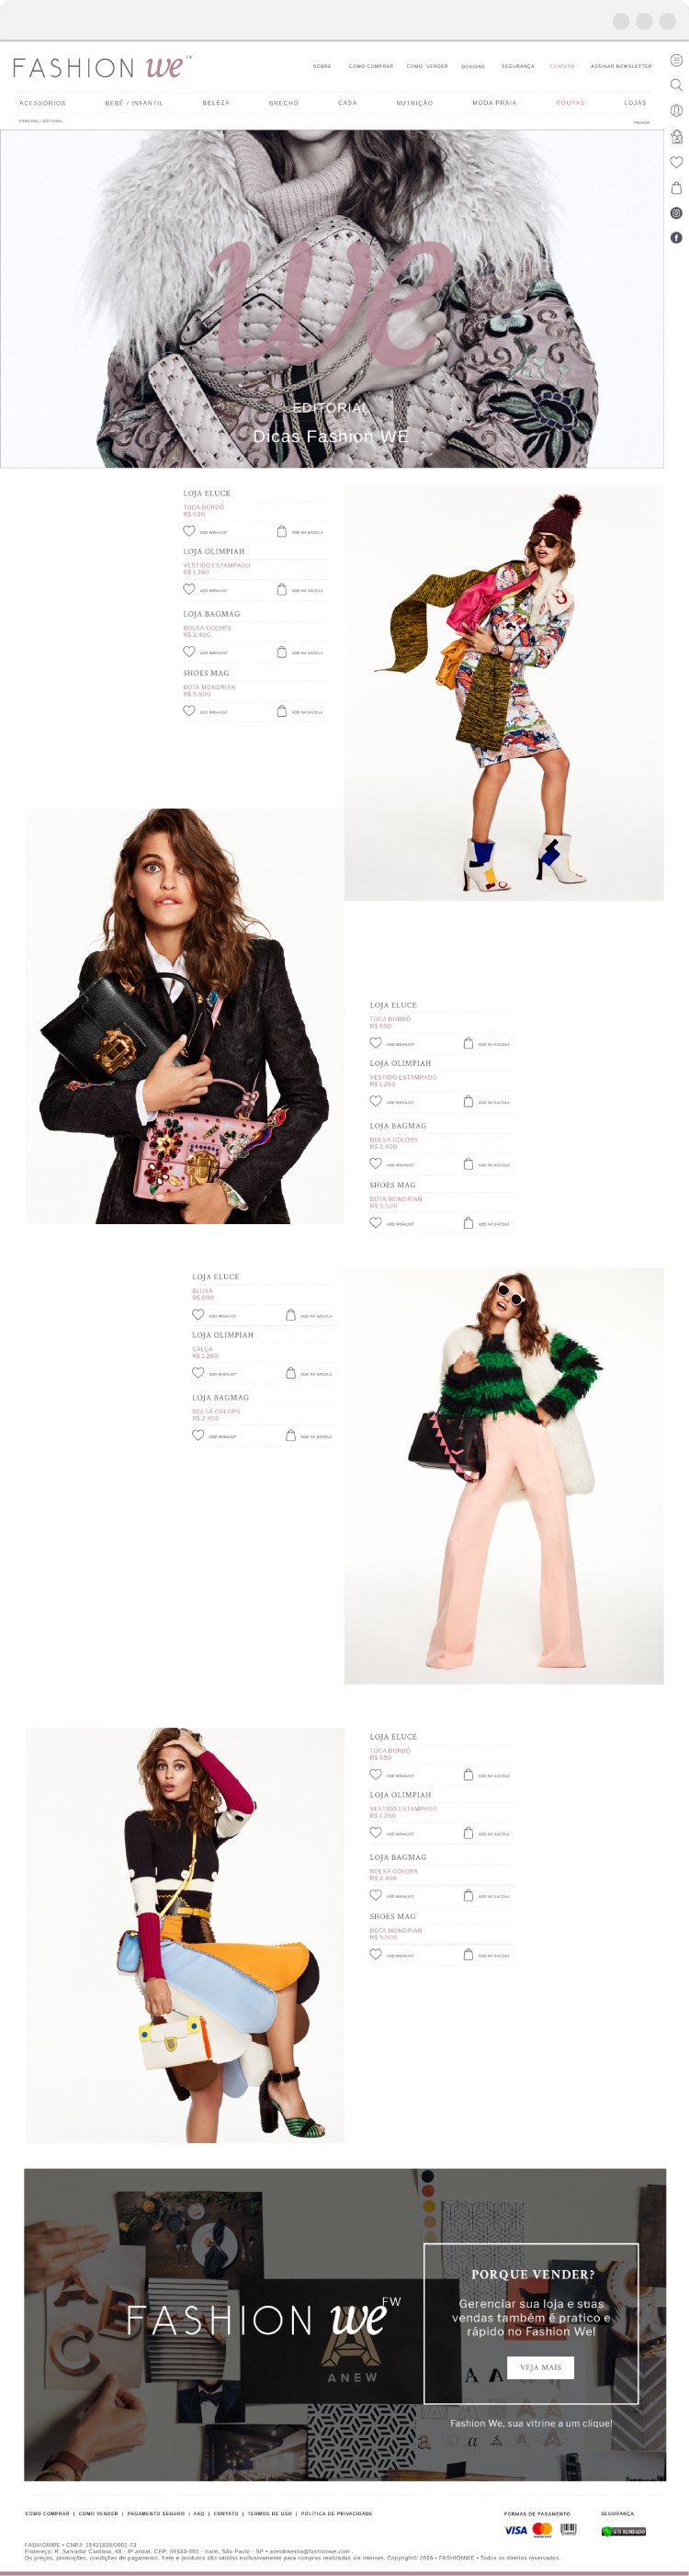 fashion_we_site3